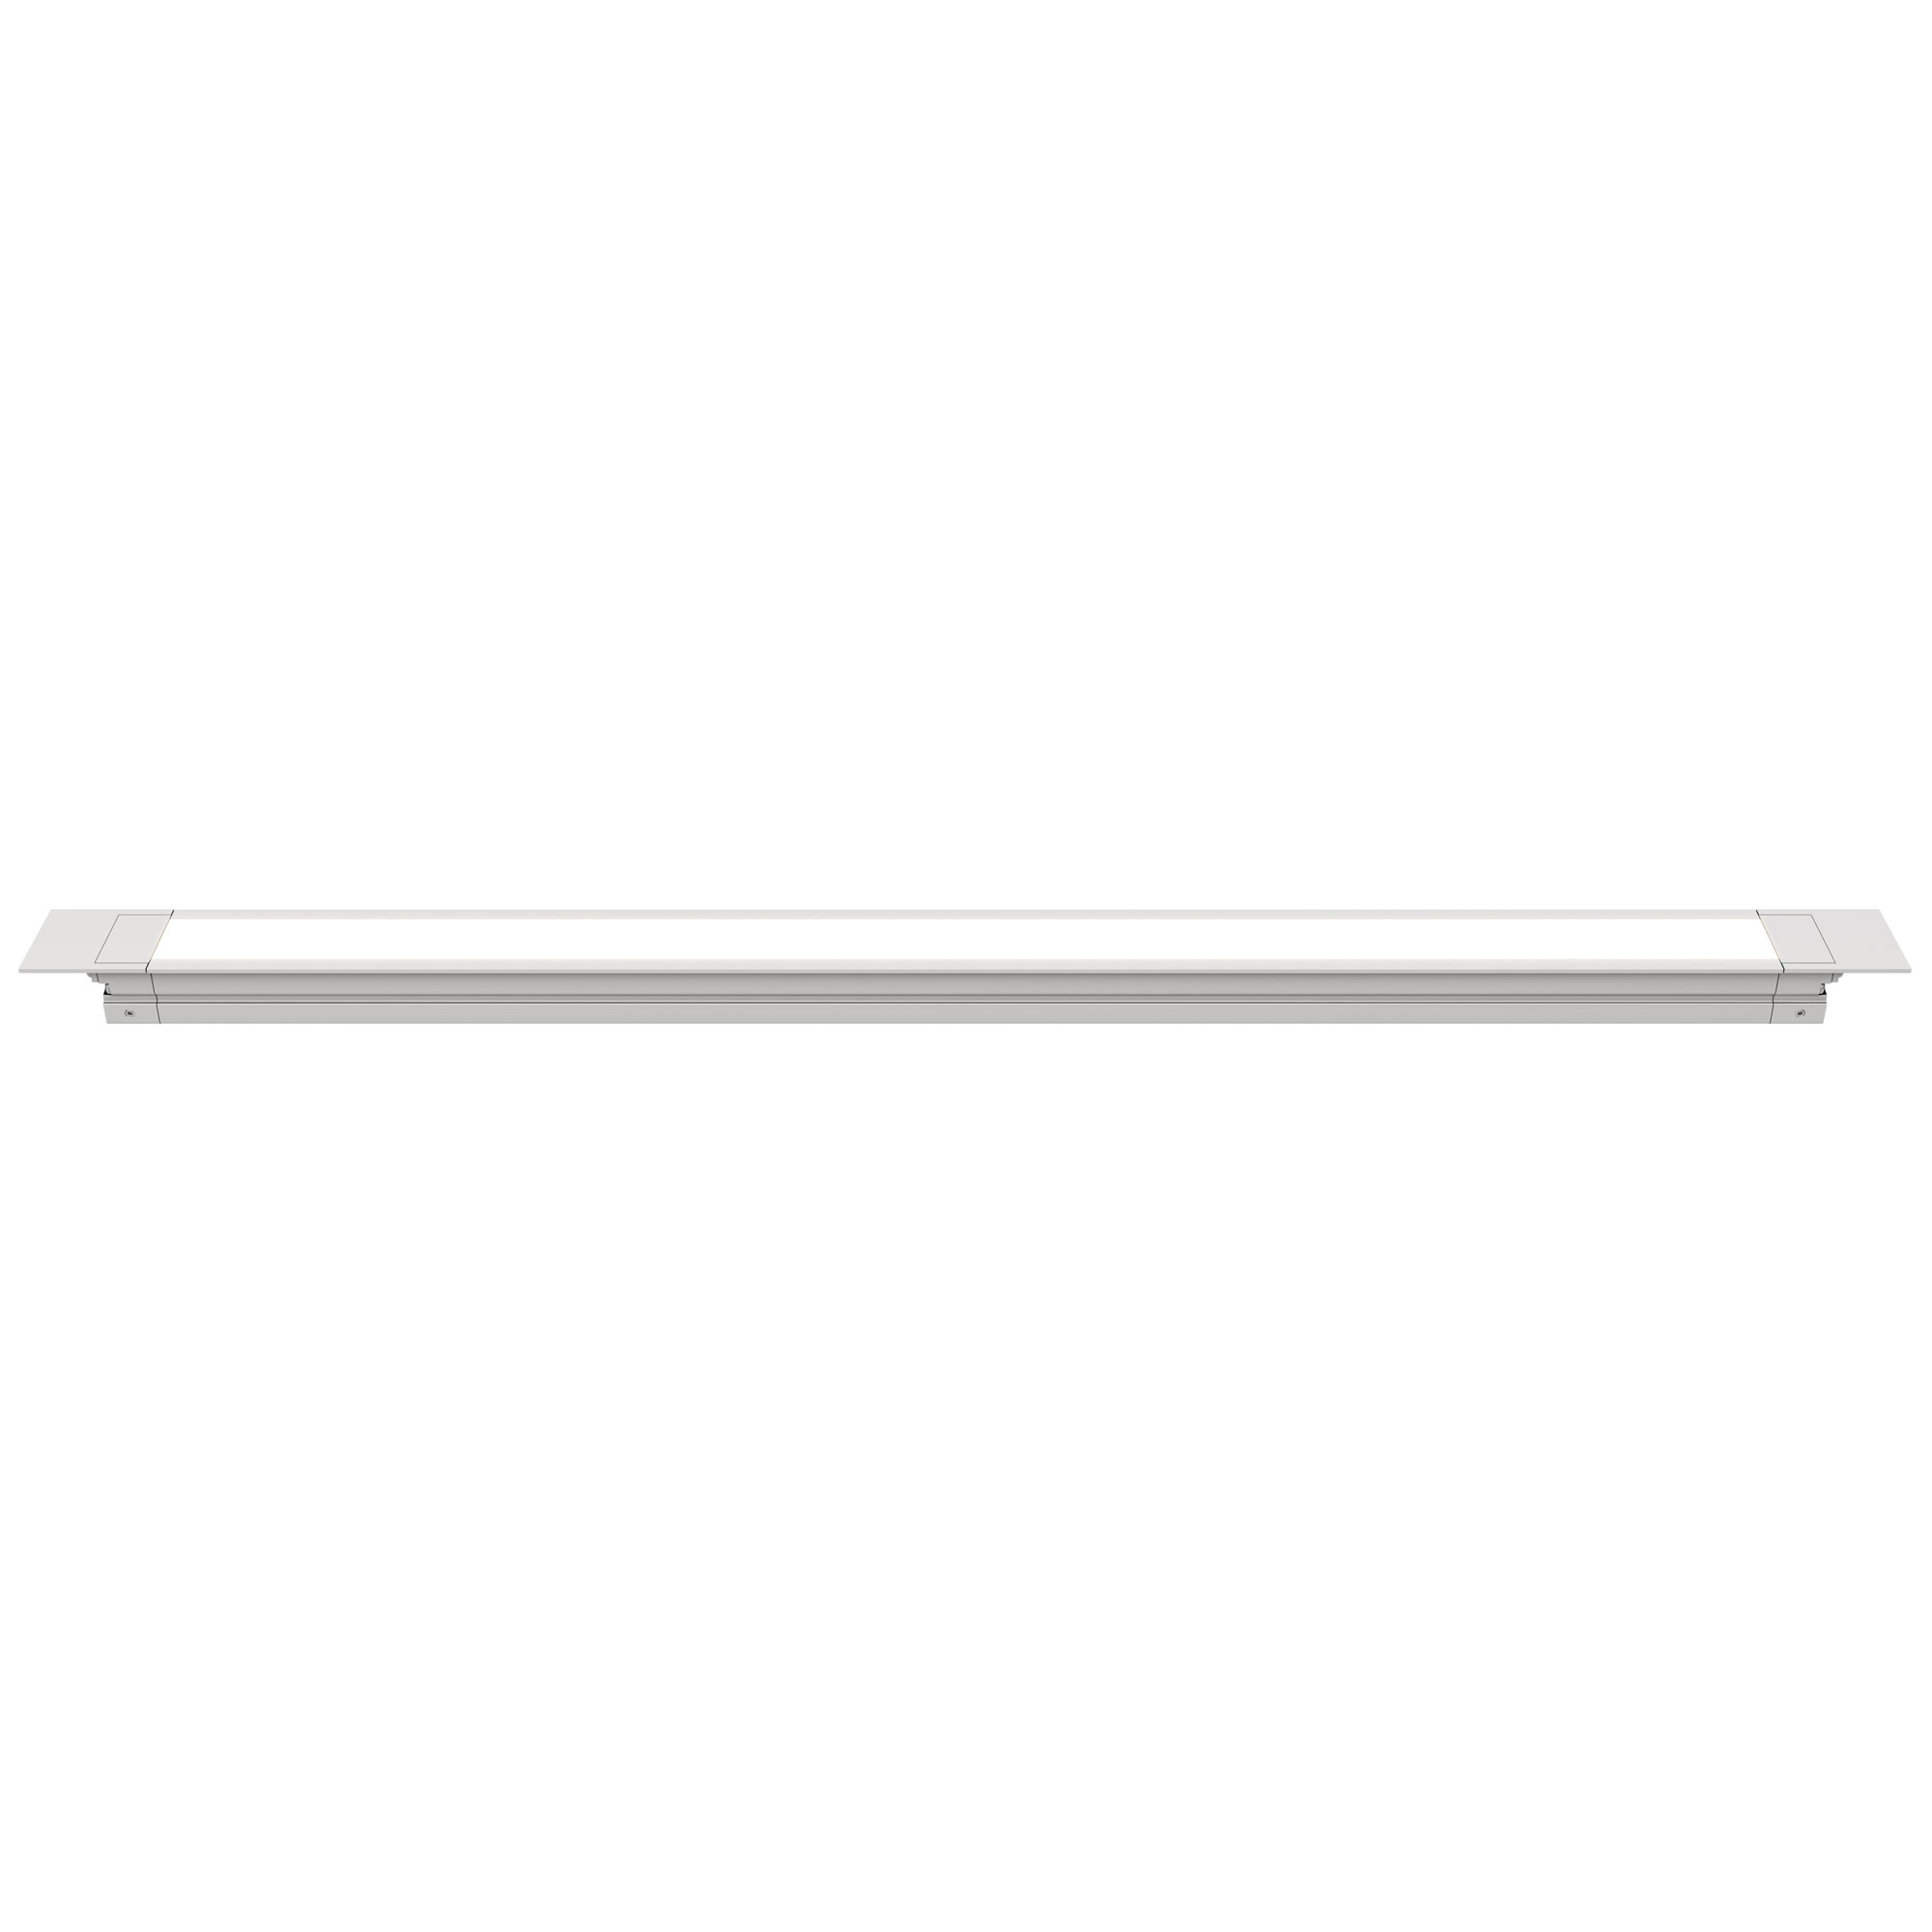 Light Channel Millwork 2.5W Commercial 24V